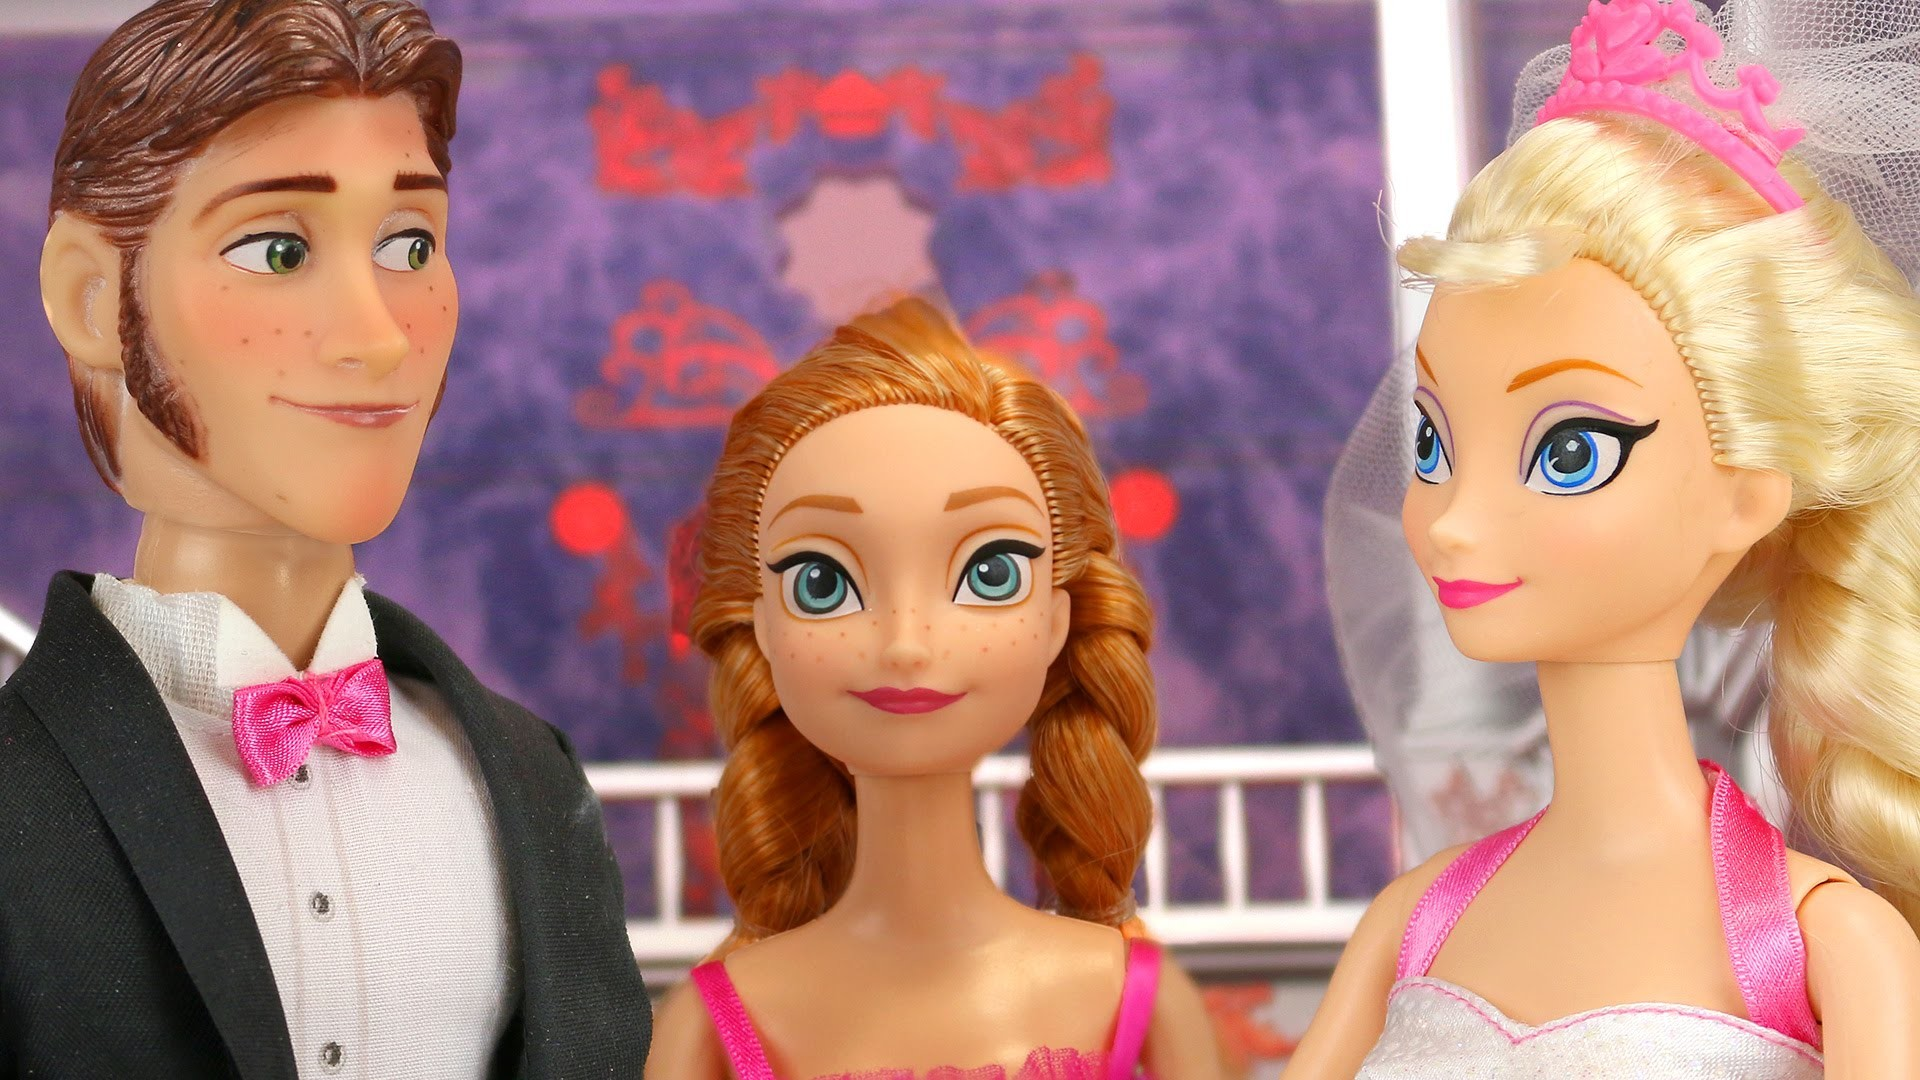 Frozen Elsa Wedding to Hans. Will Jack Frost Stop It In Time? With Anna and  Barbie. DisneyToysFan – YouTube